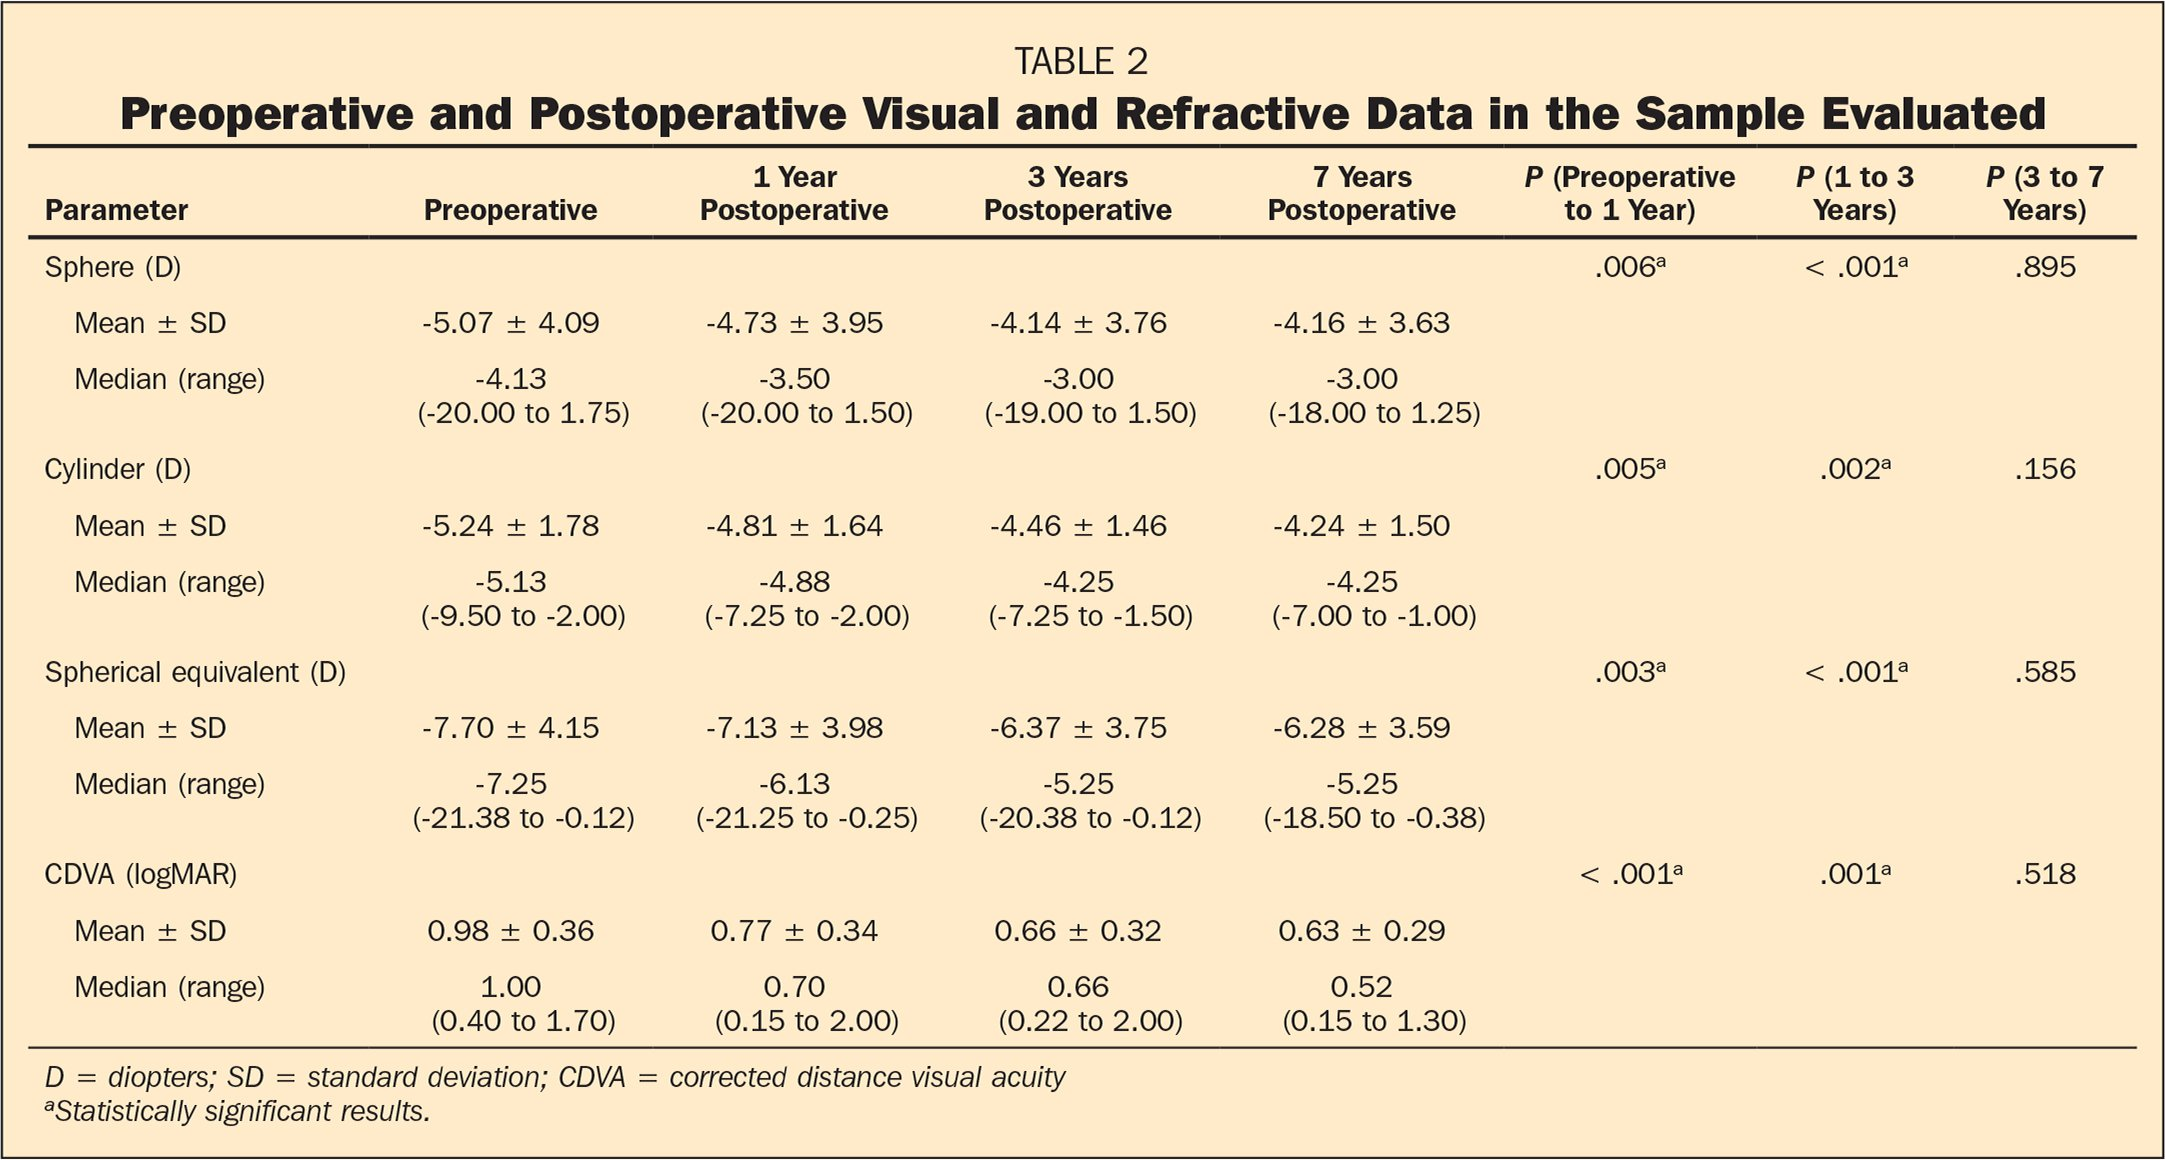 Preoperative and Postoperative Visual and Refractive Data in the Sample Evaluated